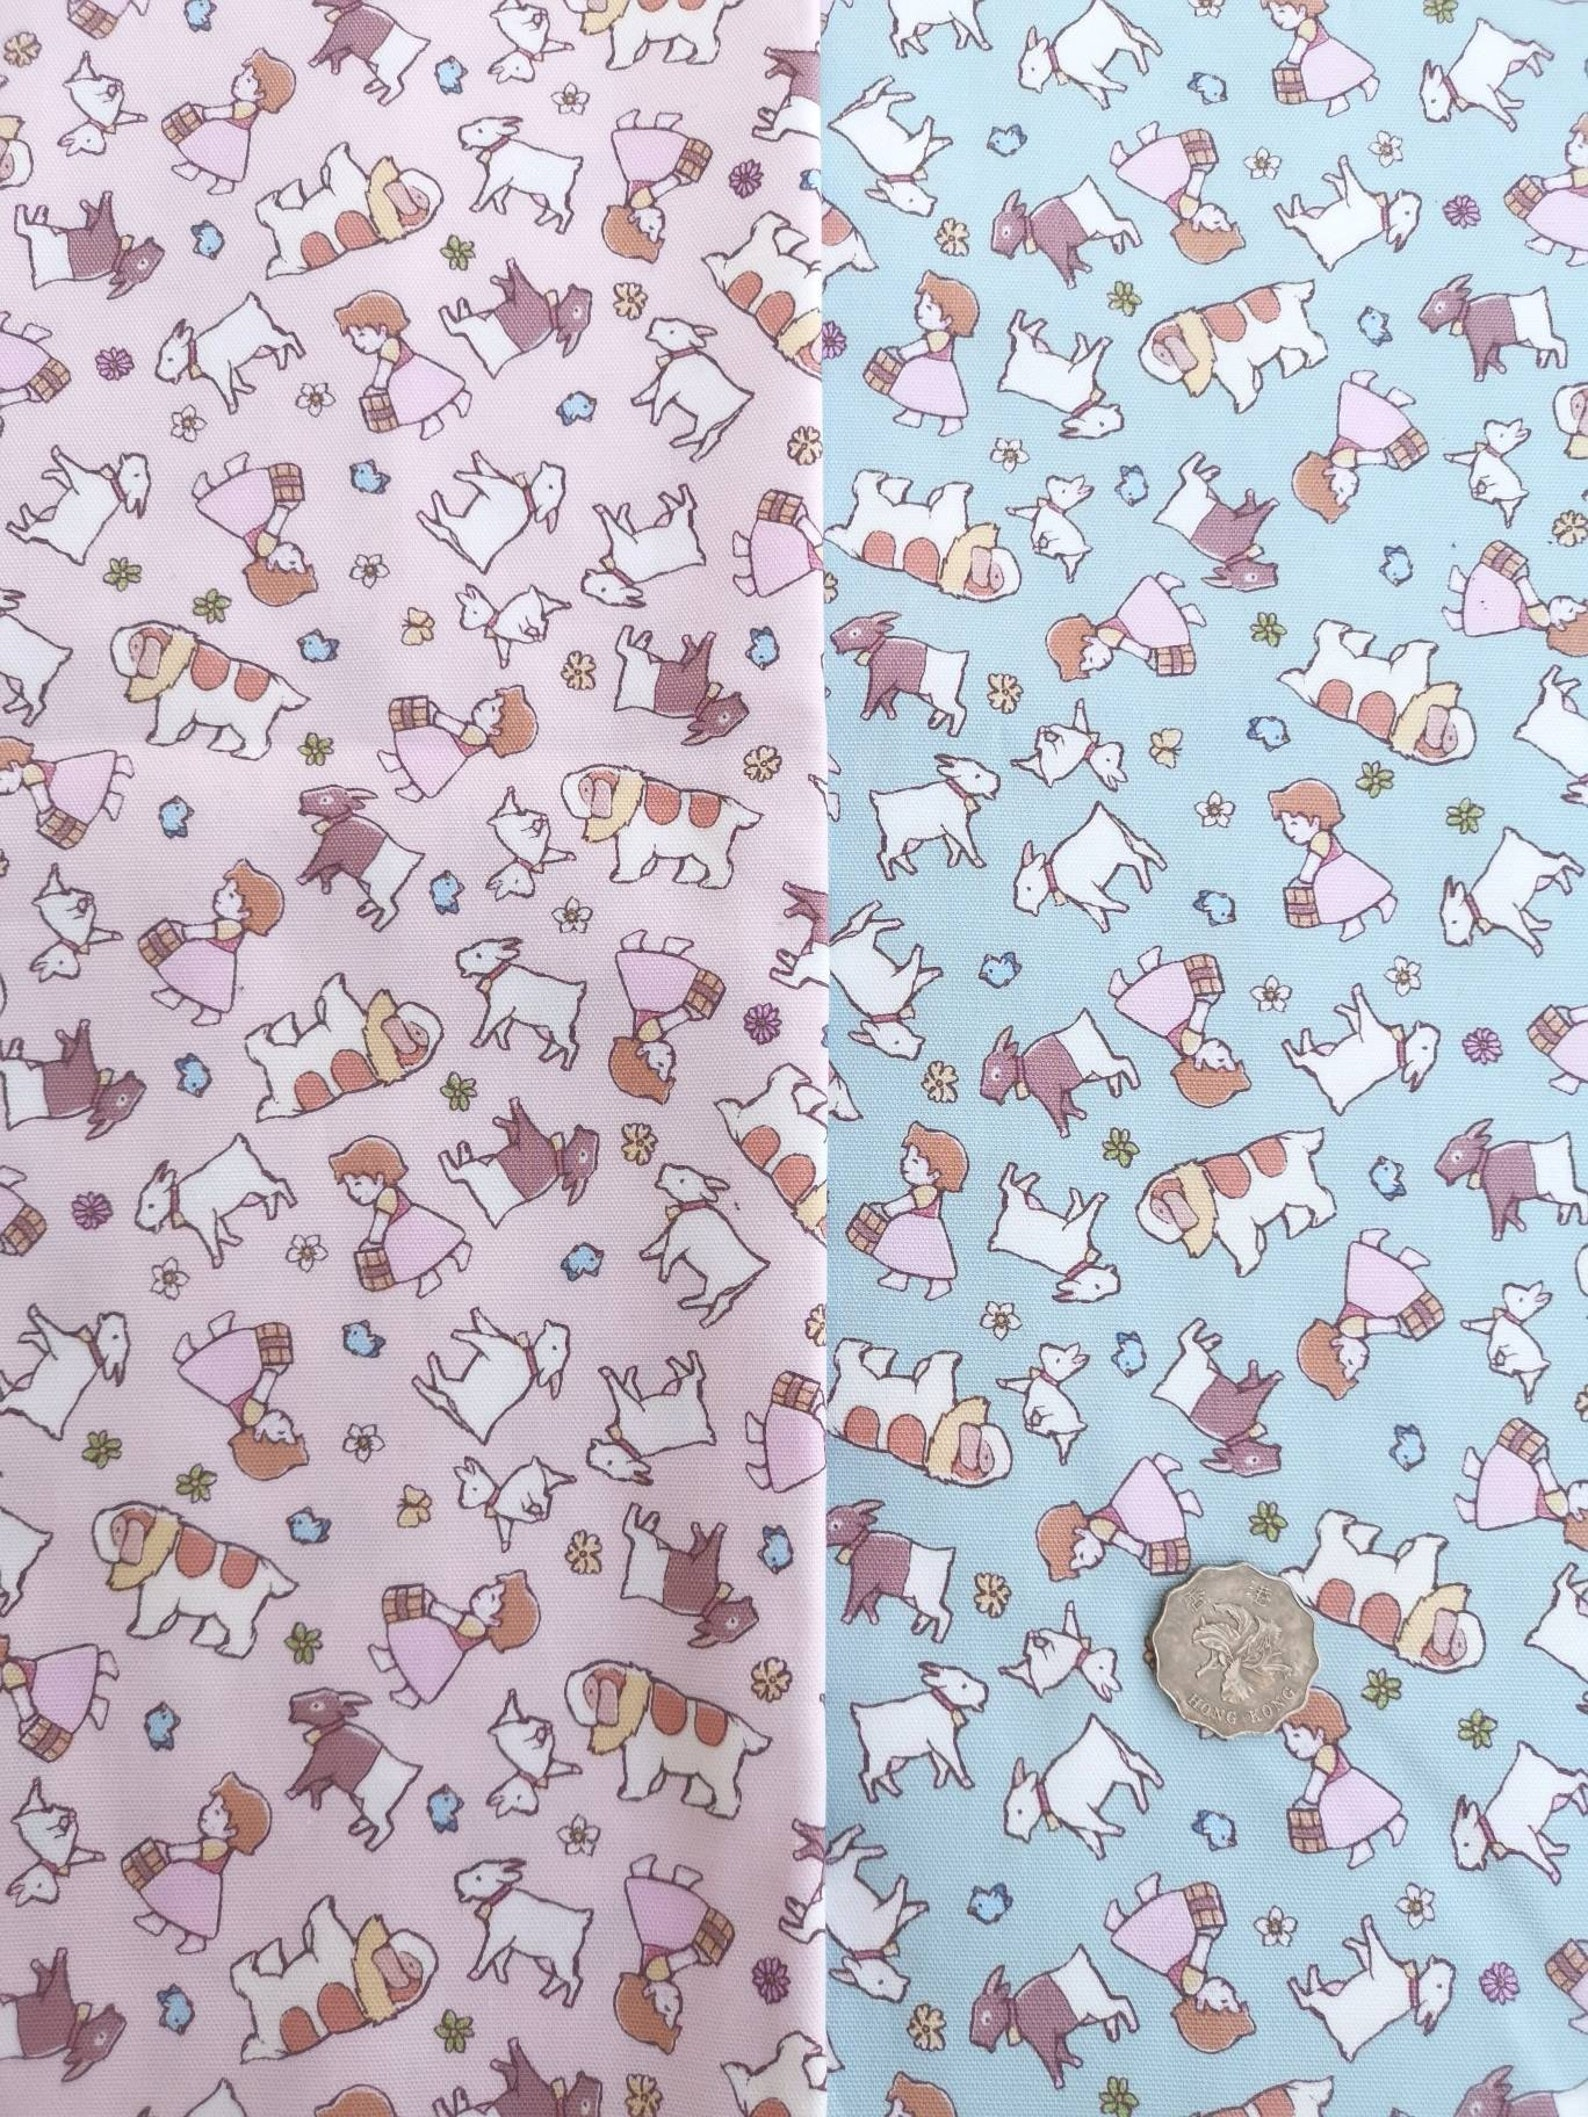 Cotton Fabric - Heidi, Girl of the Alps Fabric Made in Japan Sheep